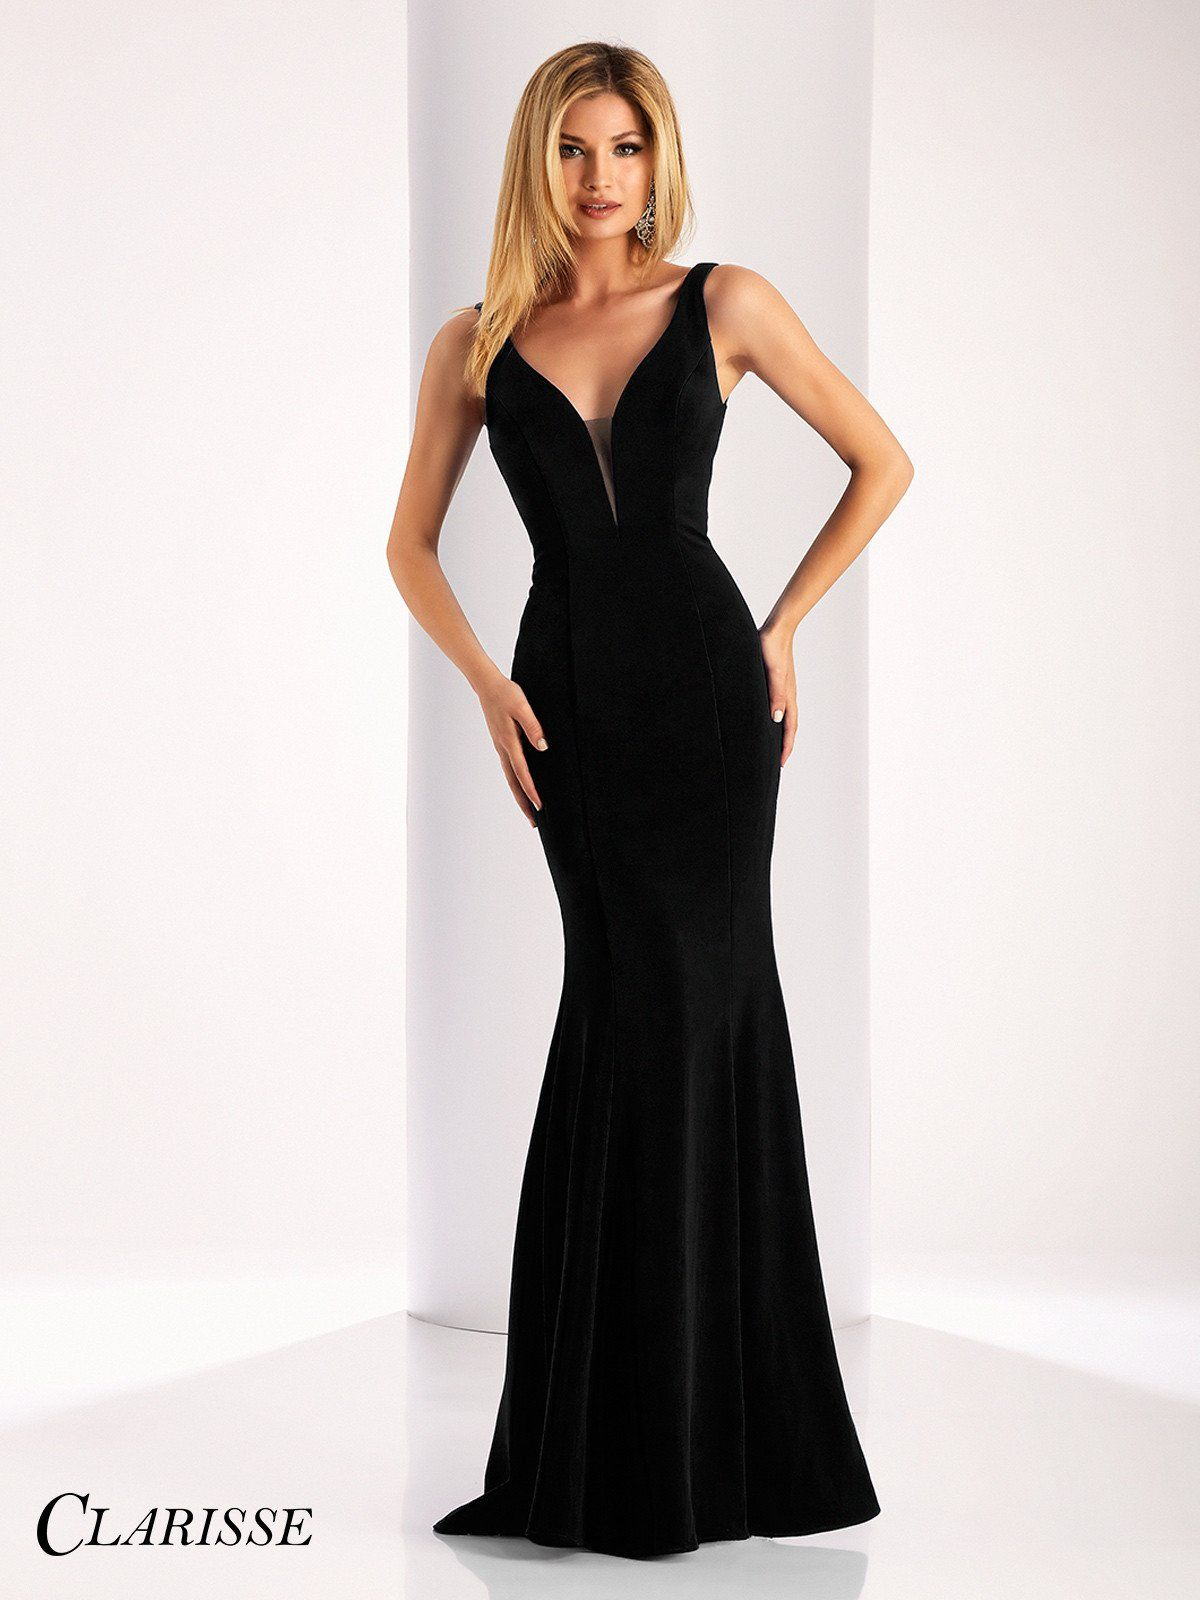 Clarisse prom black vneck prom dress products